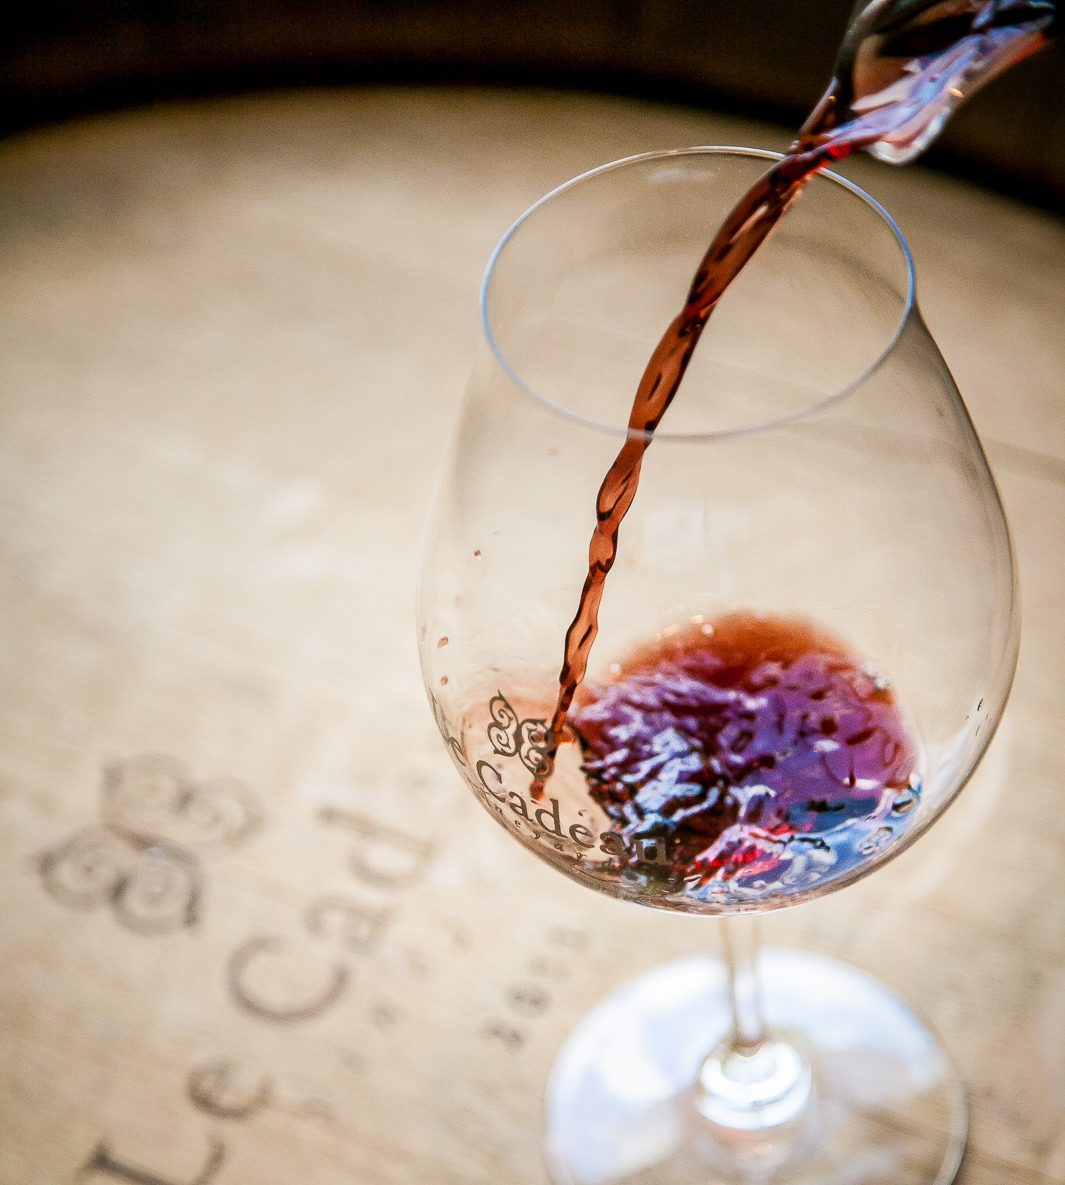 Wine Photography Tip 7 Clean Glass ALOR Consulting Le Cadeau Vineyard Oregon Willamette Valley Pinot Noir